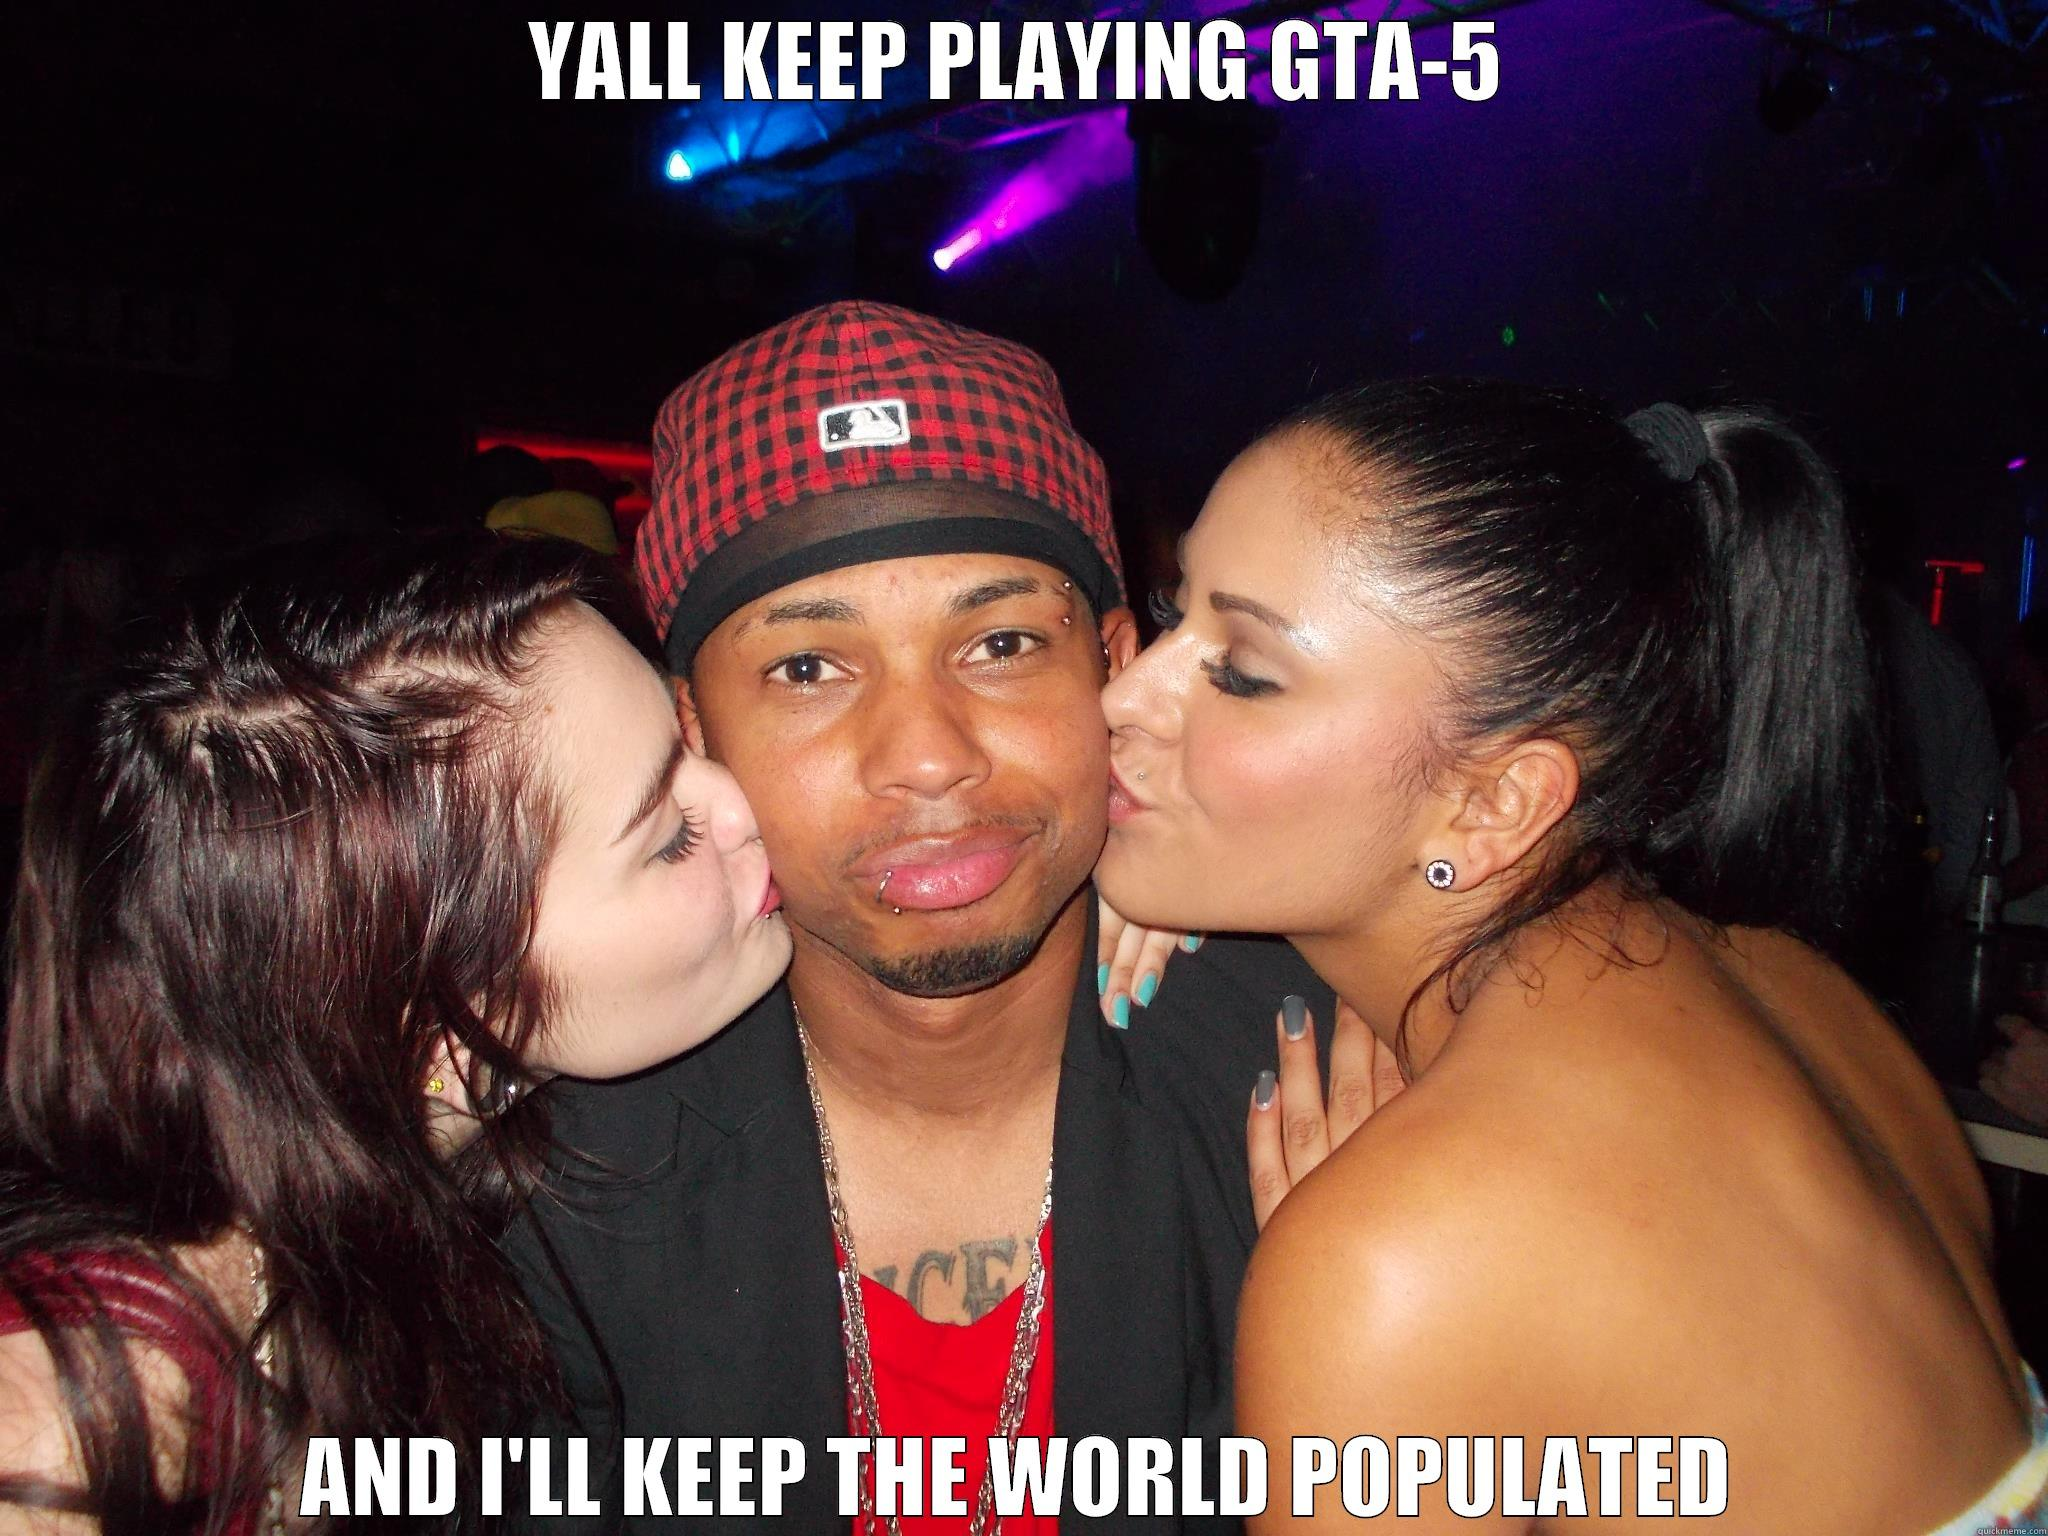 GTA-5 OR PUSSY?! - YALL KEEP PLAYING GTA-5 AND I'LL KEEP THE WORLD POPULATED Misc